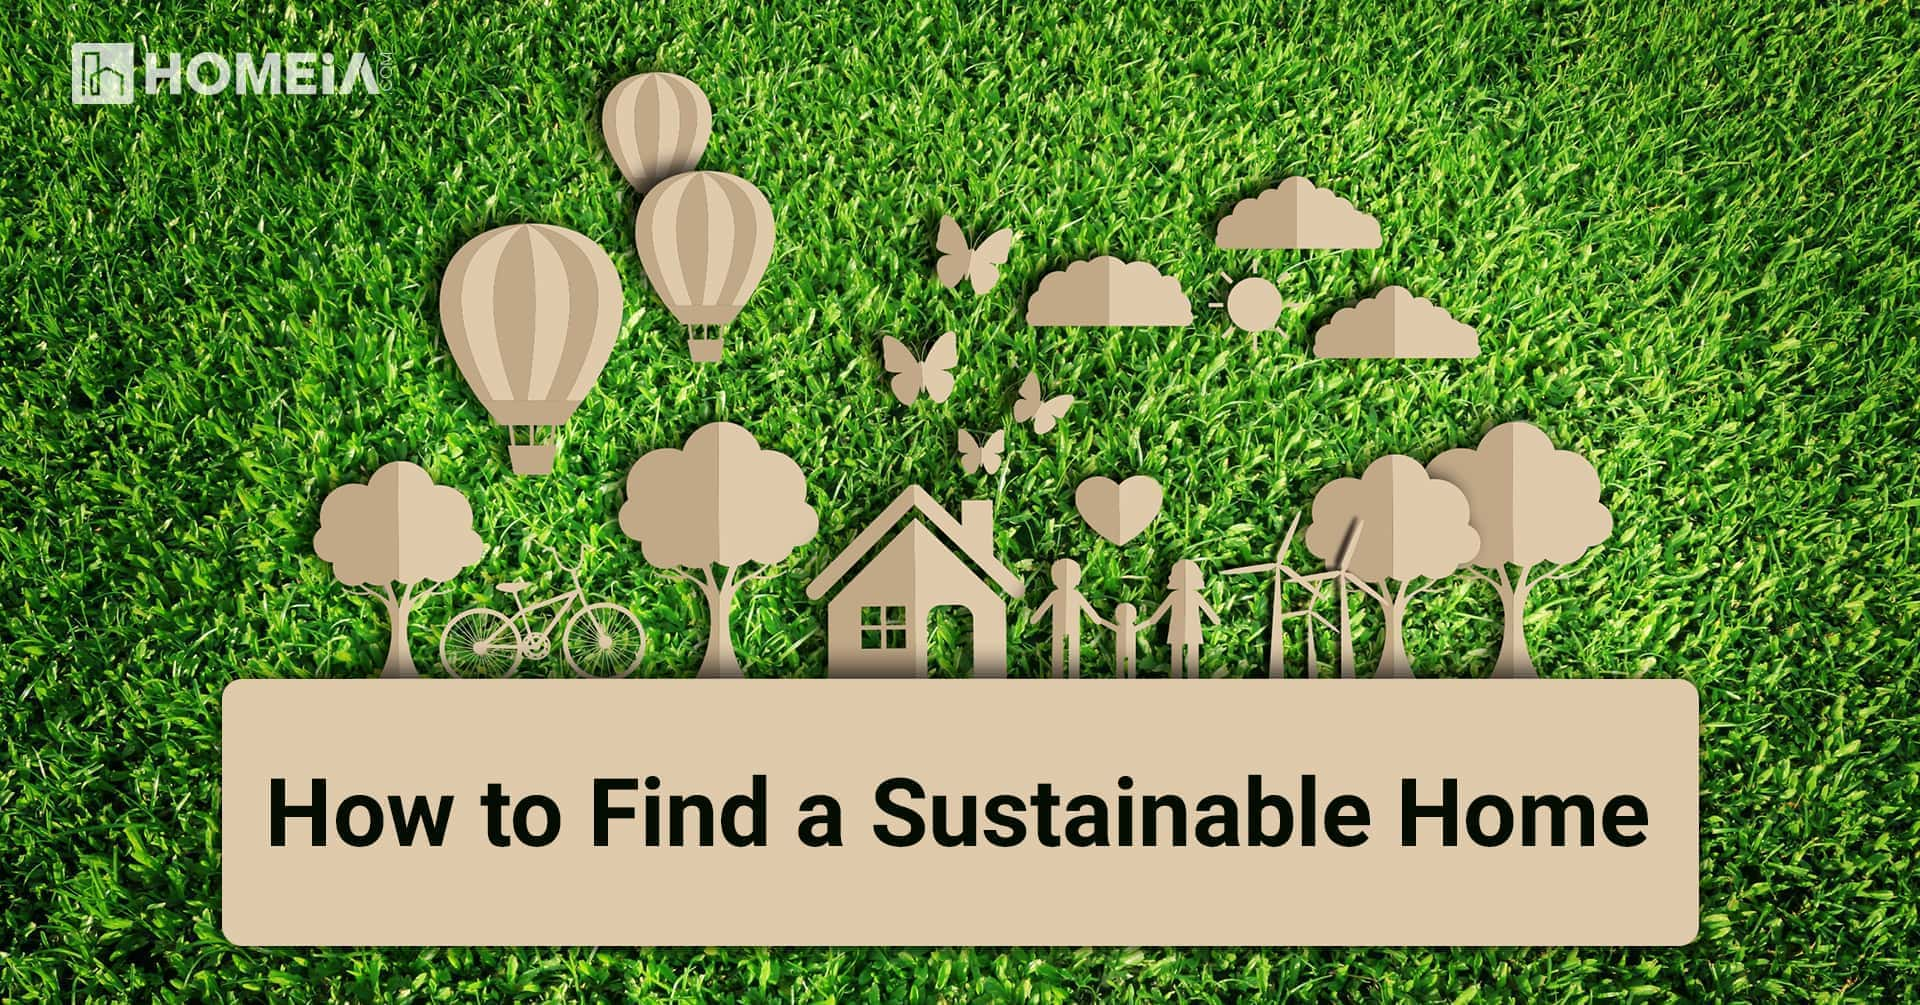 How to Find a Sustainable Home